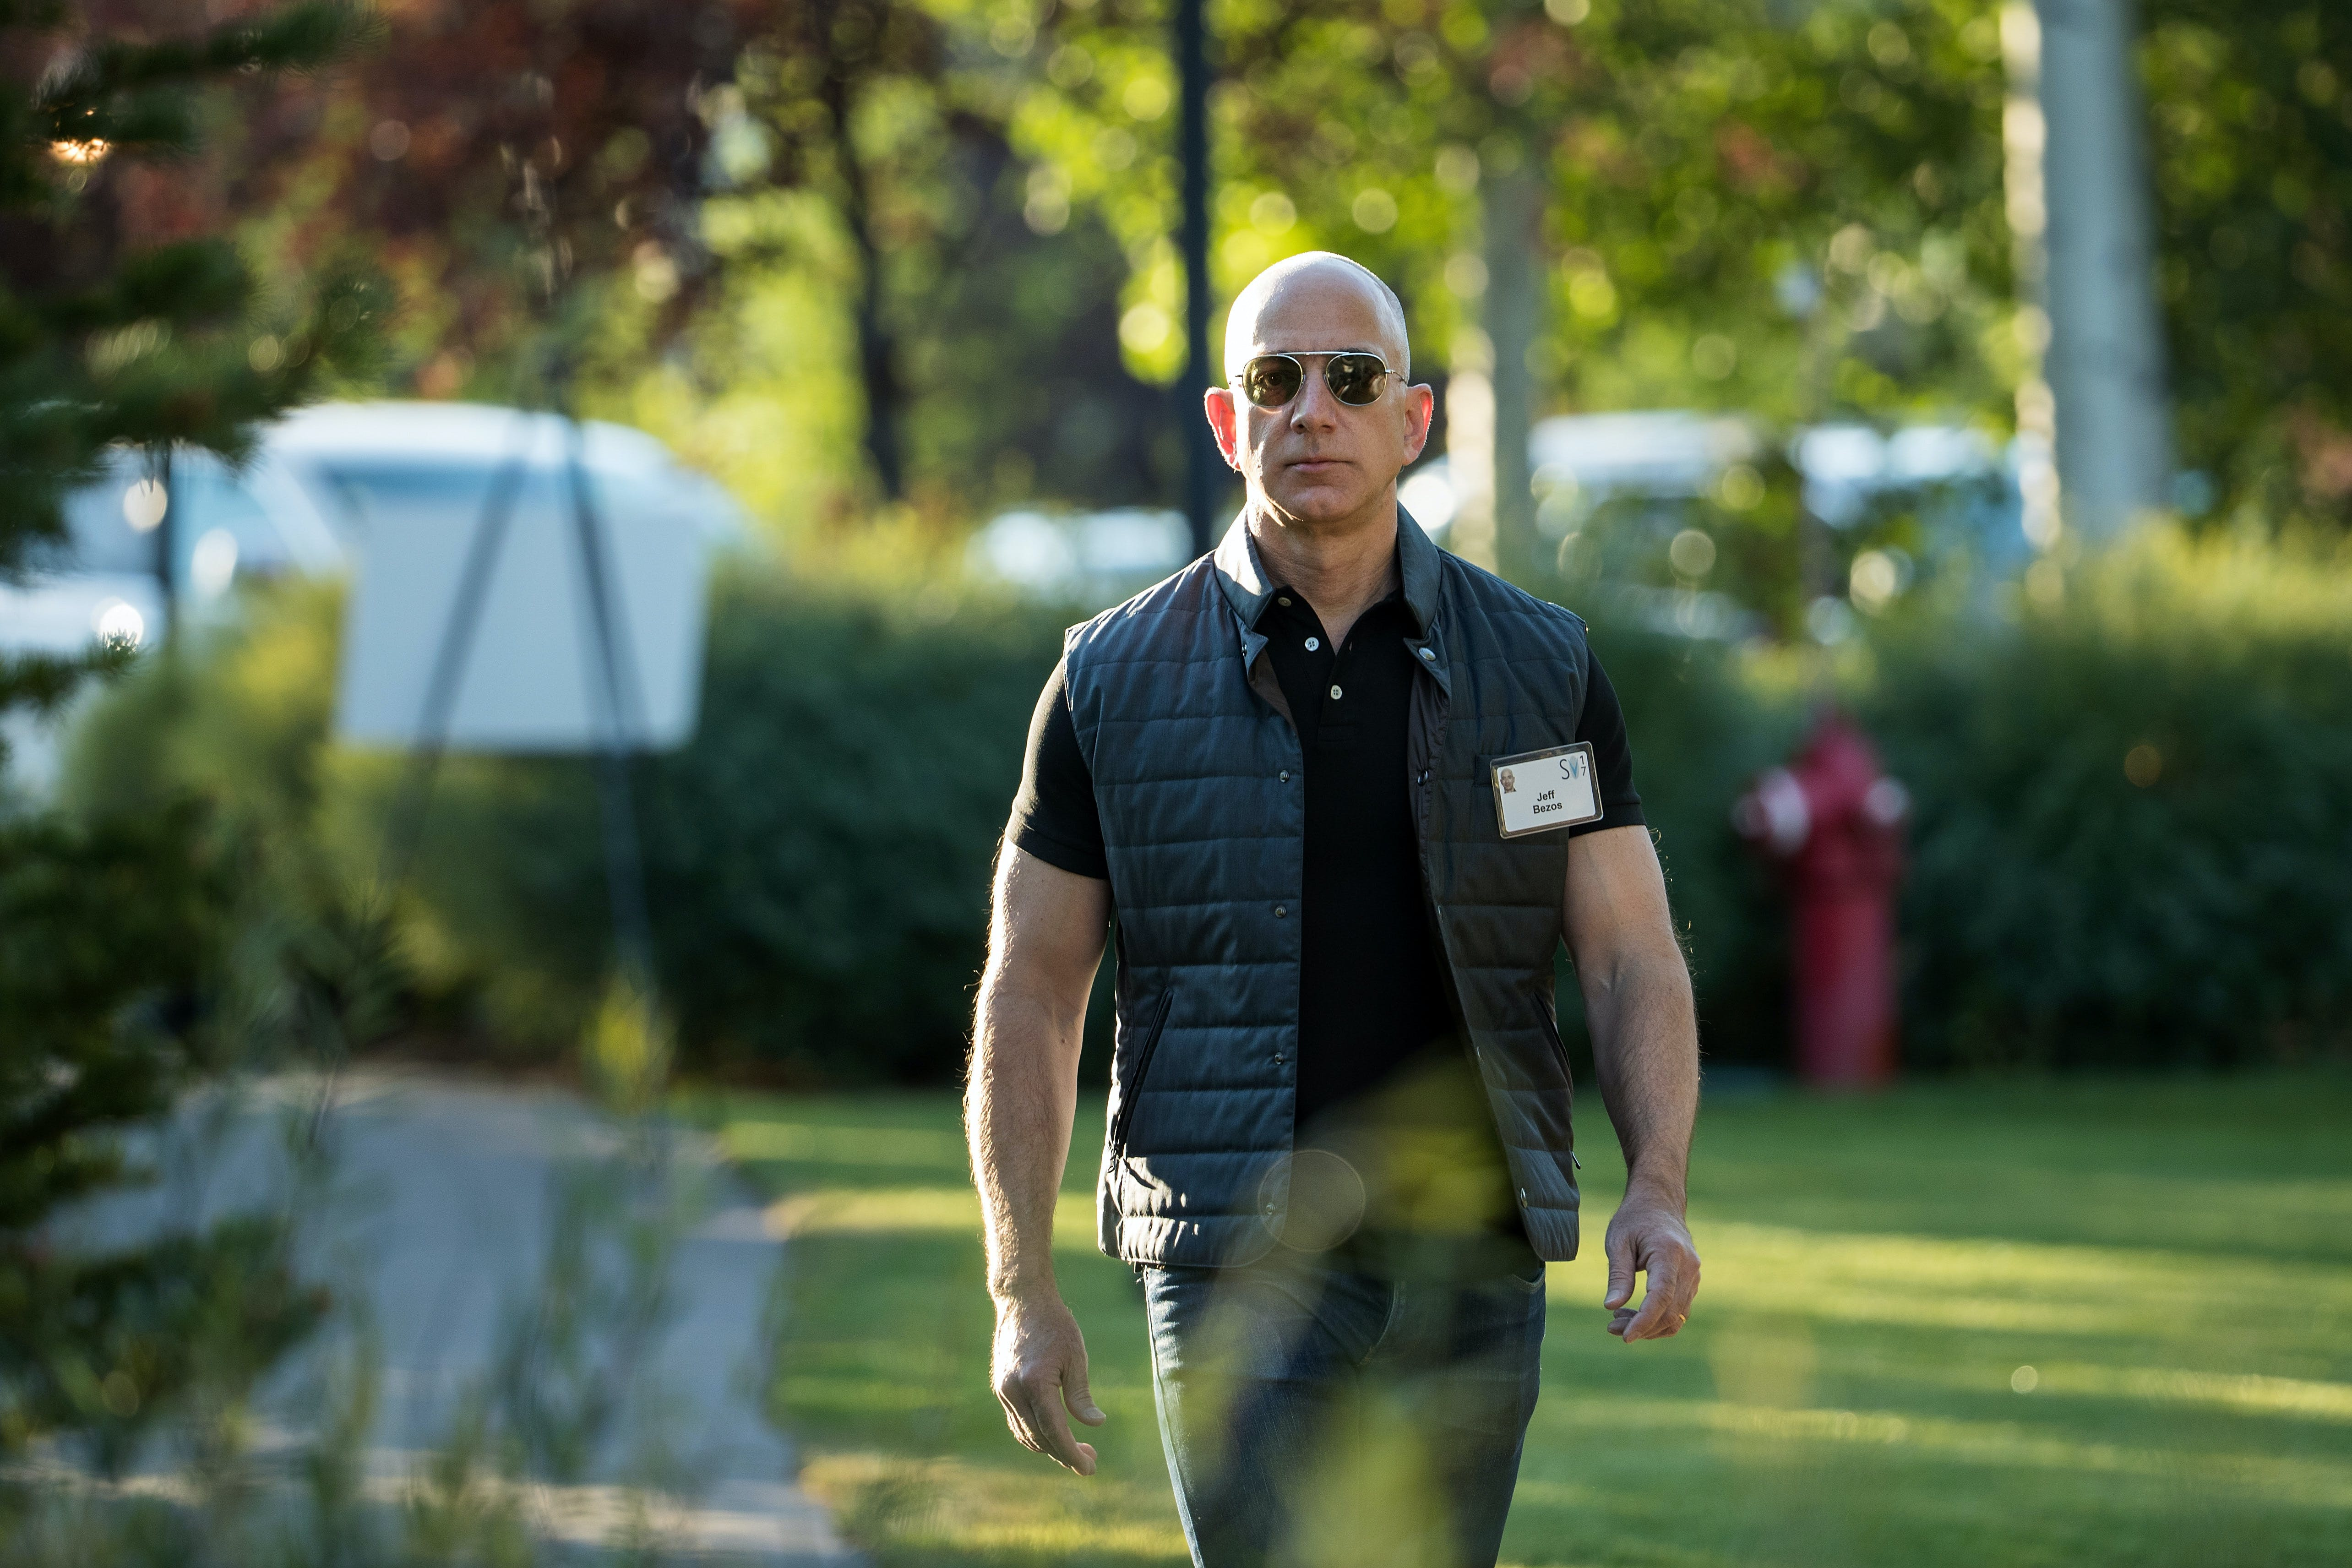 drew-angerer-over-at-getty-images-made-his-damn-money-today-boys Jeff Bezos Chief Executive Officer Of Amazon Arrives For The Third Day Of The